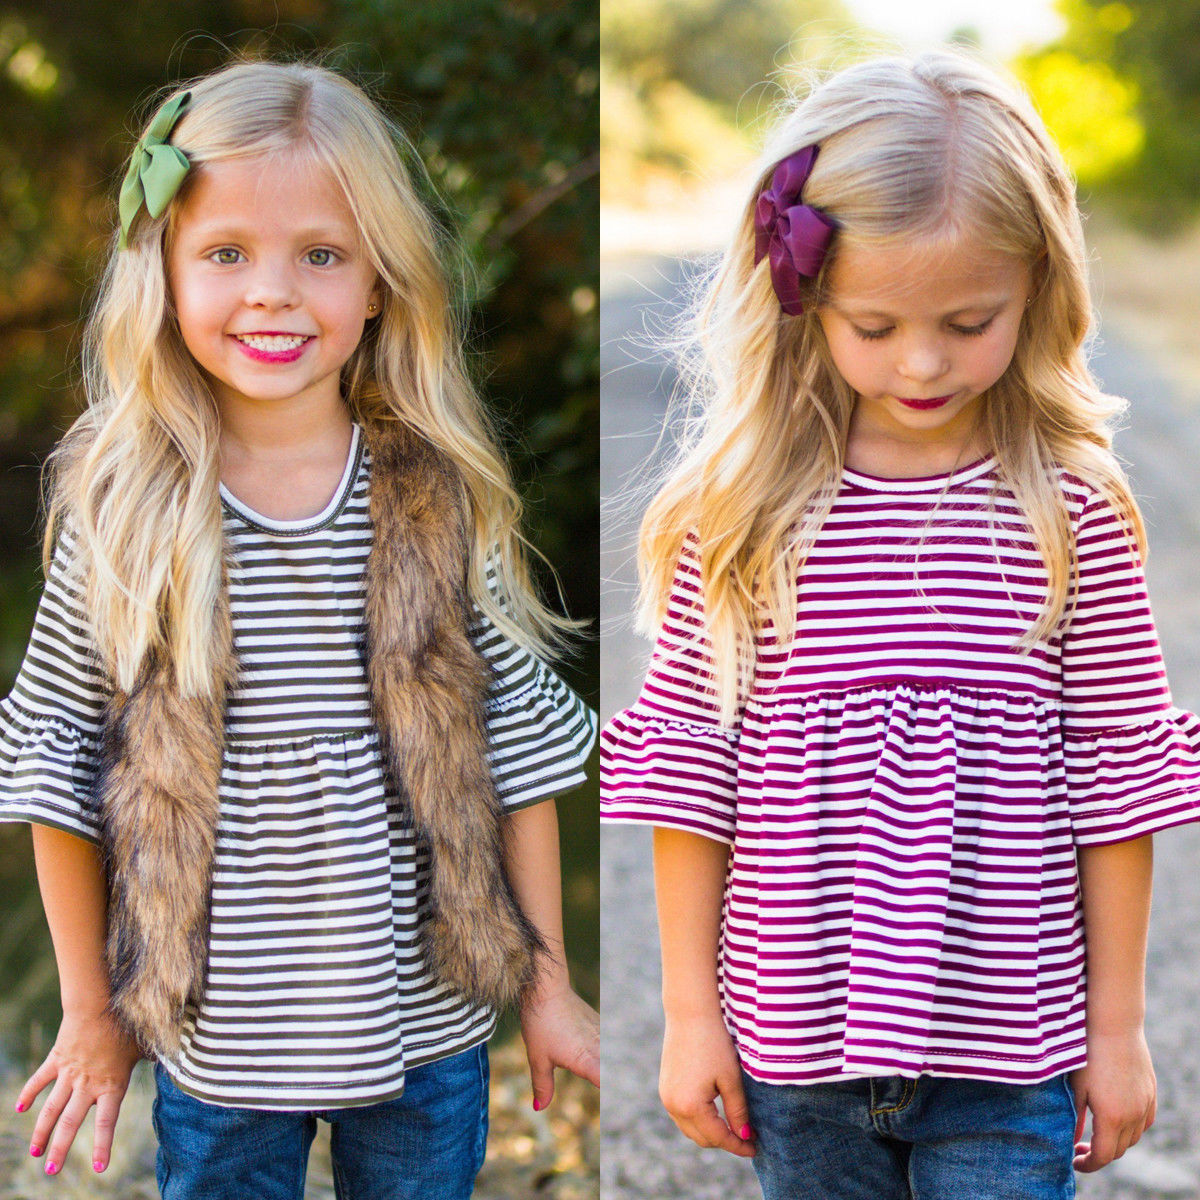 Shirts Bell-Sleeve Toddlers Girls Striped-Tee Kids Cotton Cute Top 1-6Y